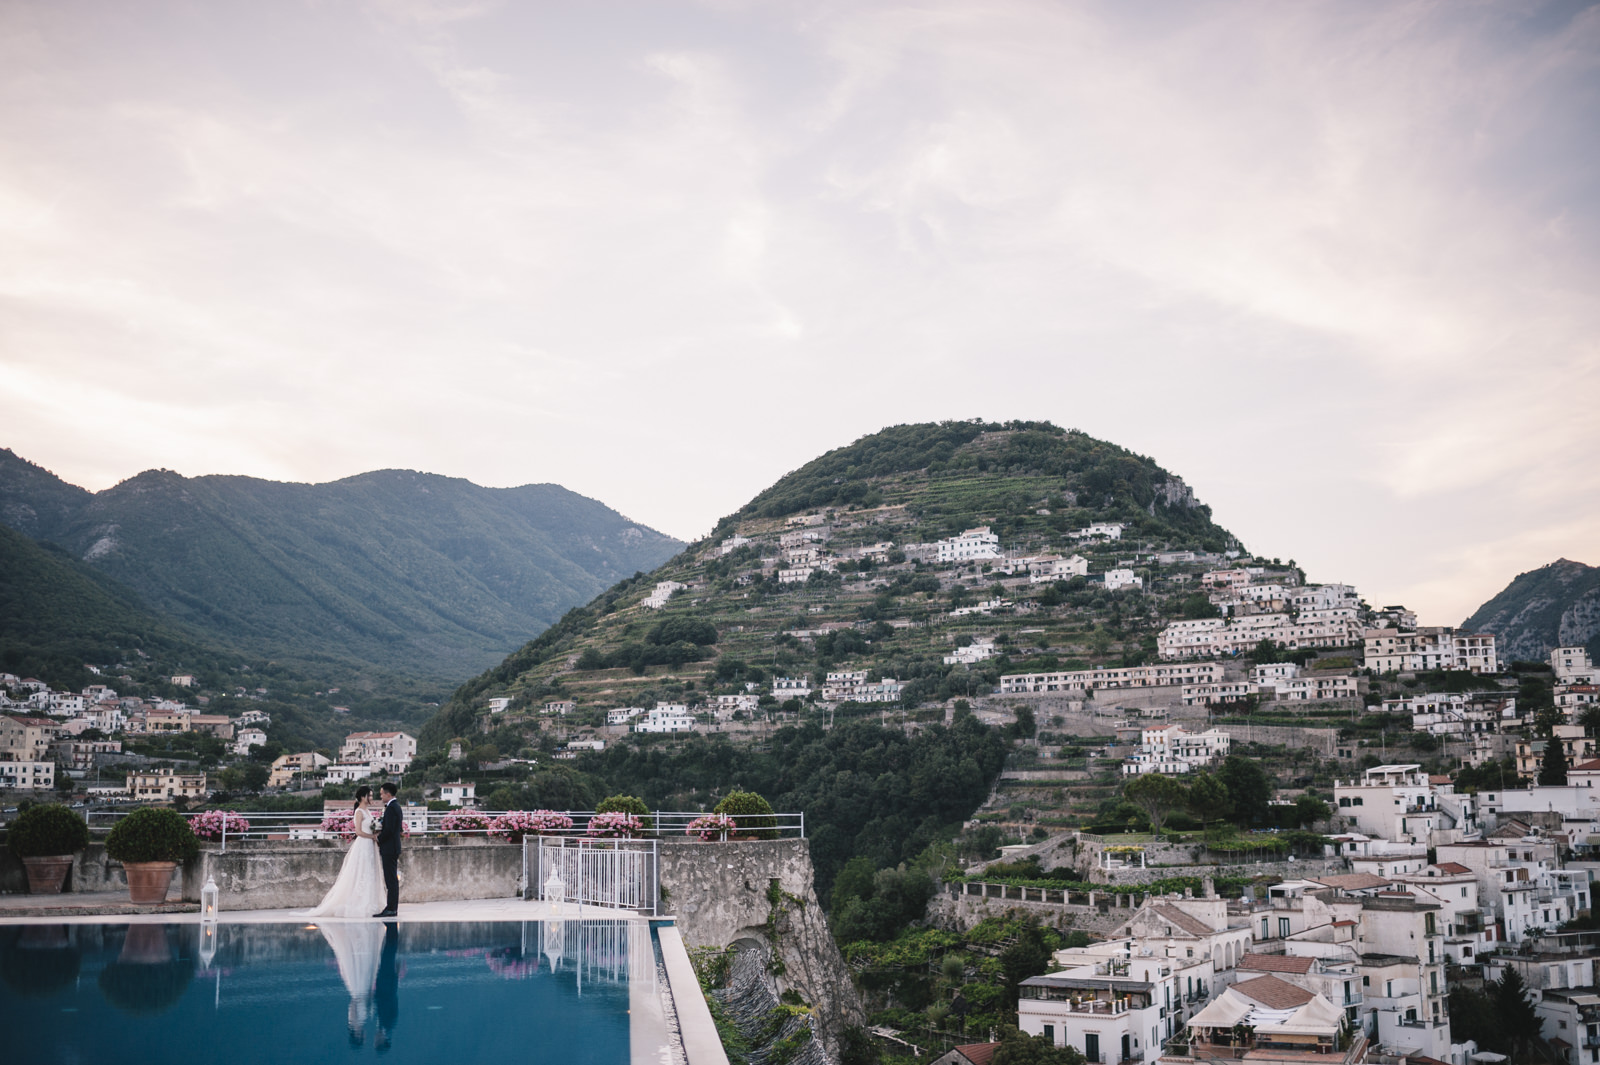 bride and groom by the infinity pool of the belmont hotel caruso and ravello on the background